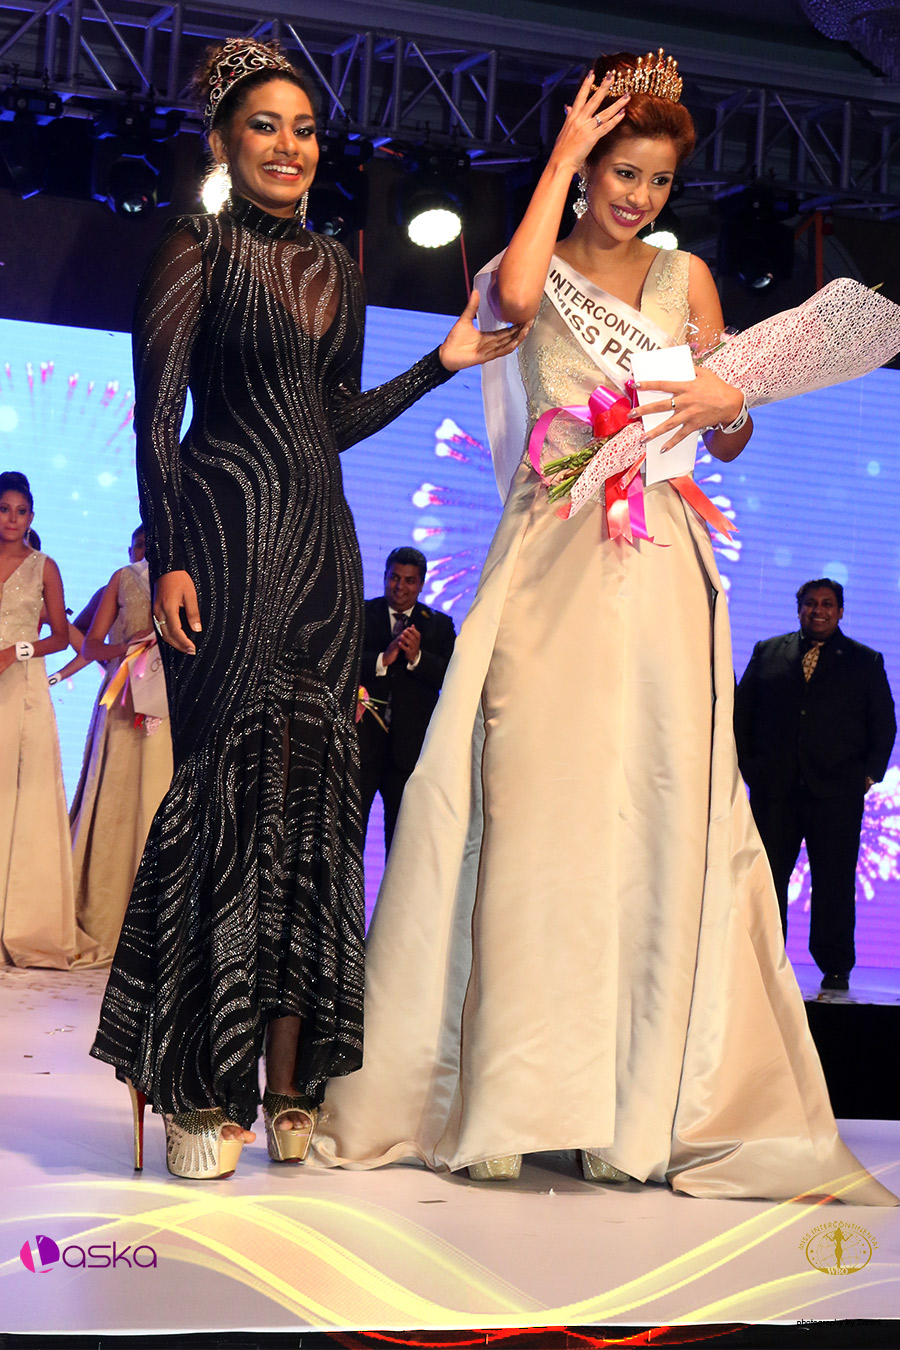 Tracy Ann DeZilva+miss sri lanka